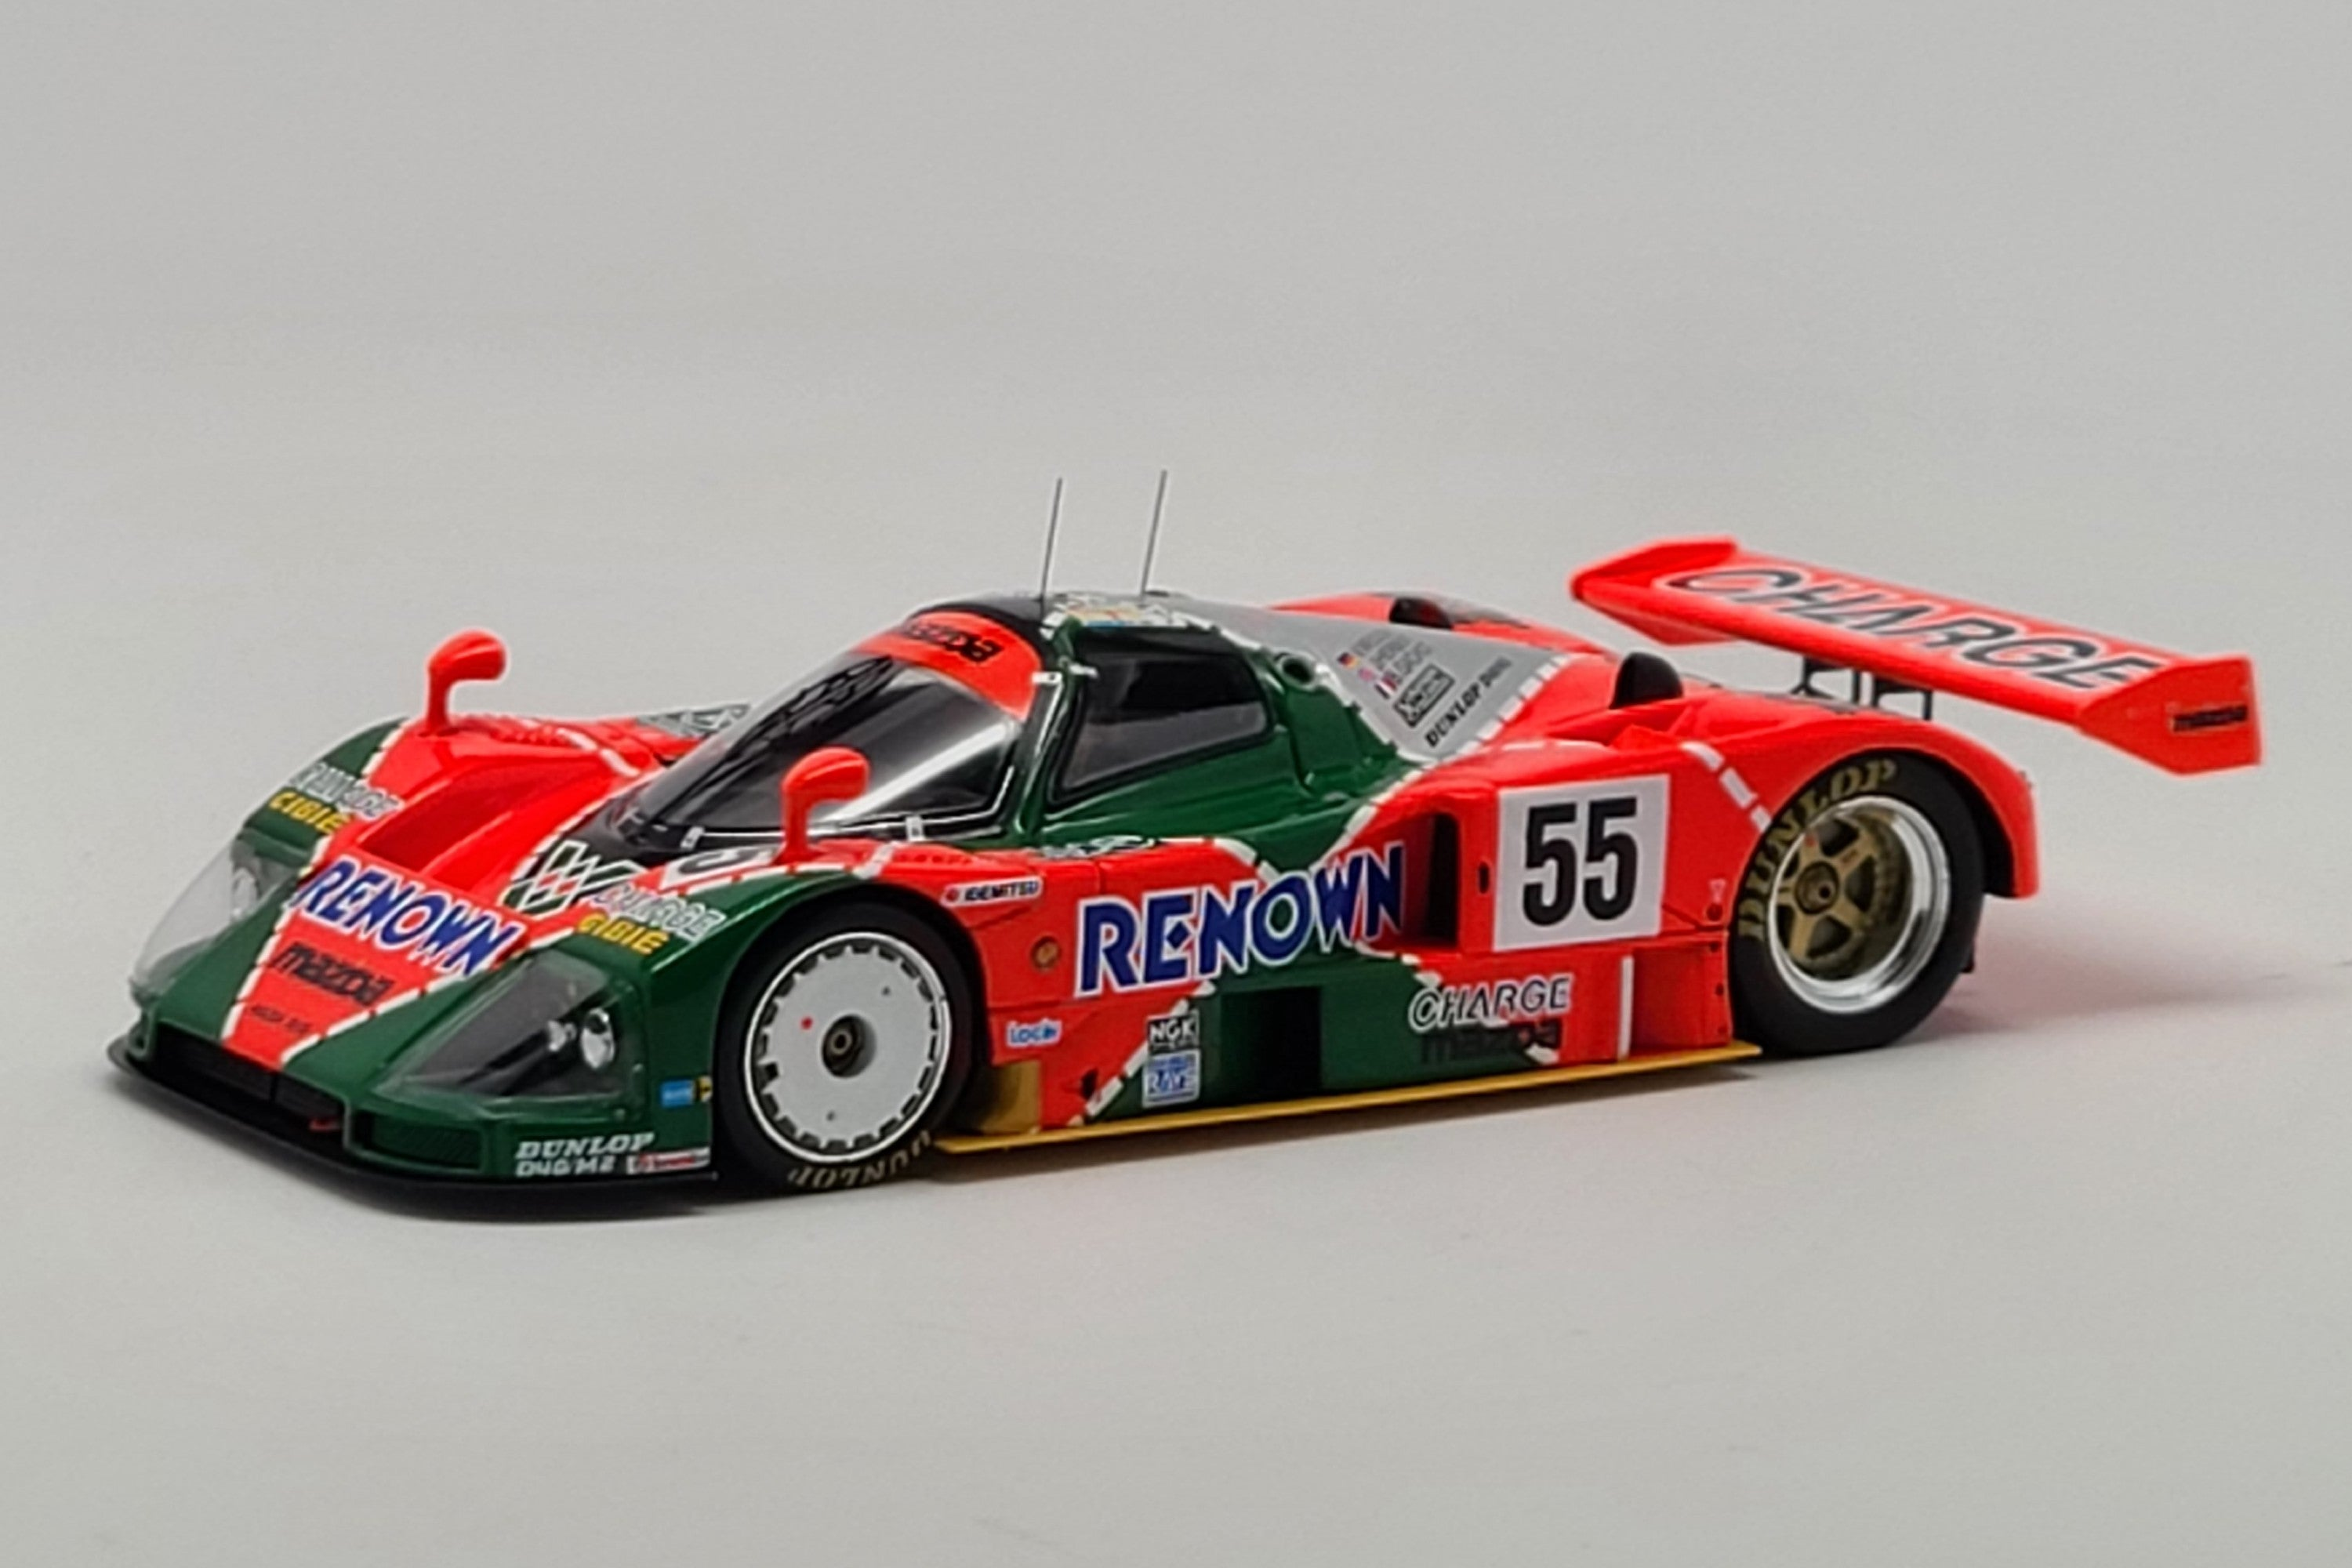 Mazda 787B (1991 Le Mans Winner) | 1:43 Scale Model Car by Spark | Front Quarter